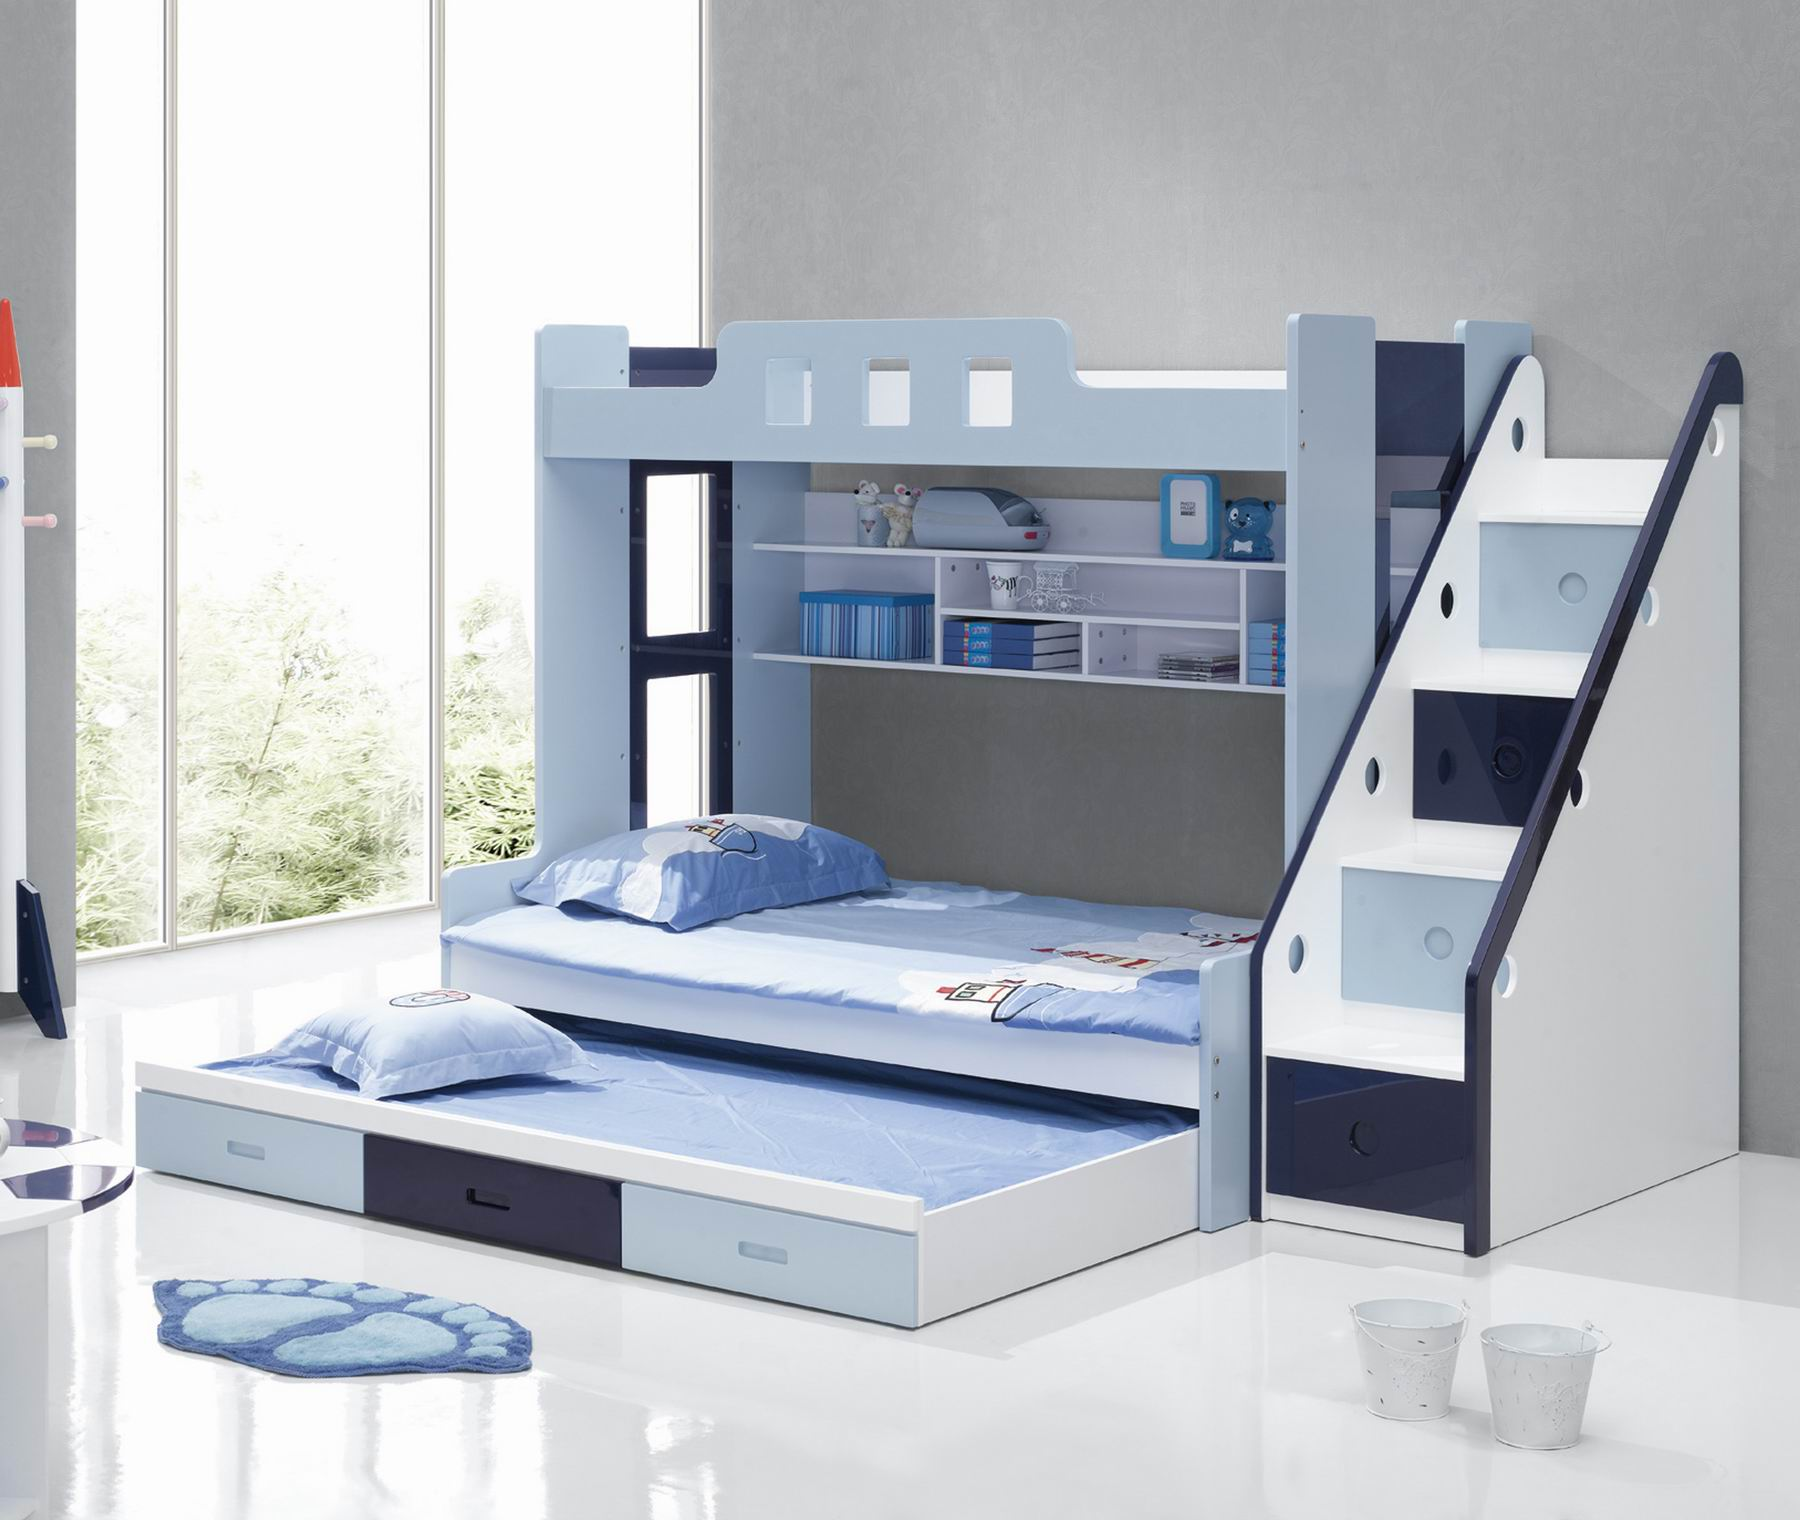 bunk bed couch - Bunk Beds Design Plans